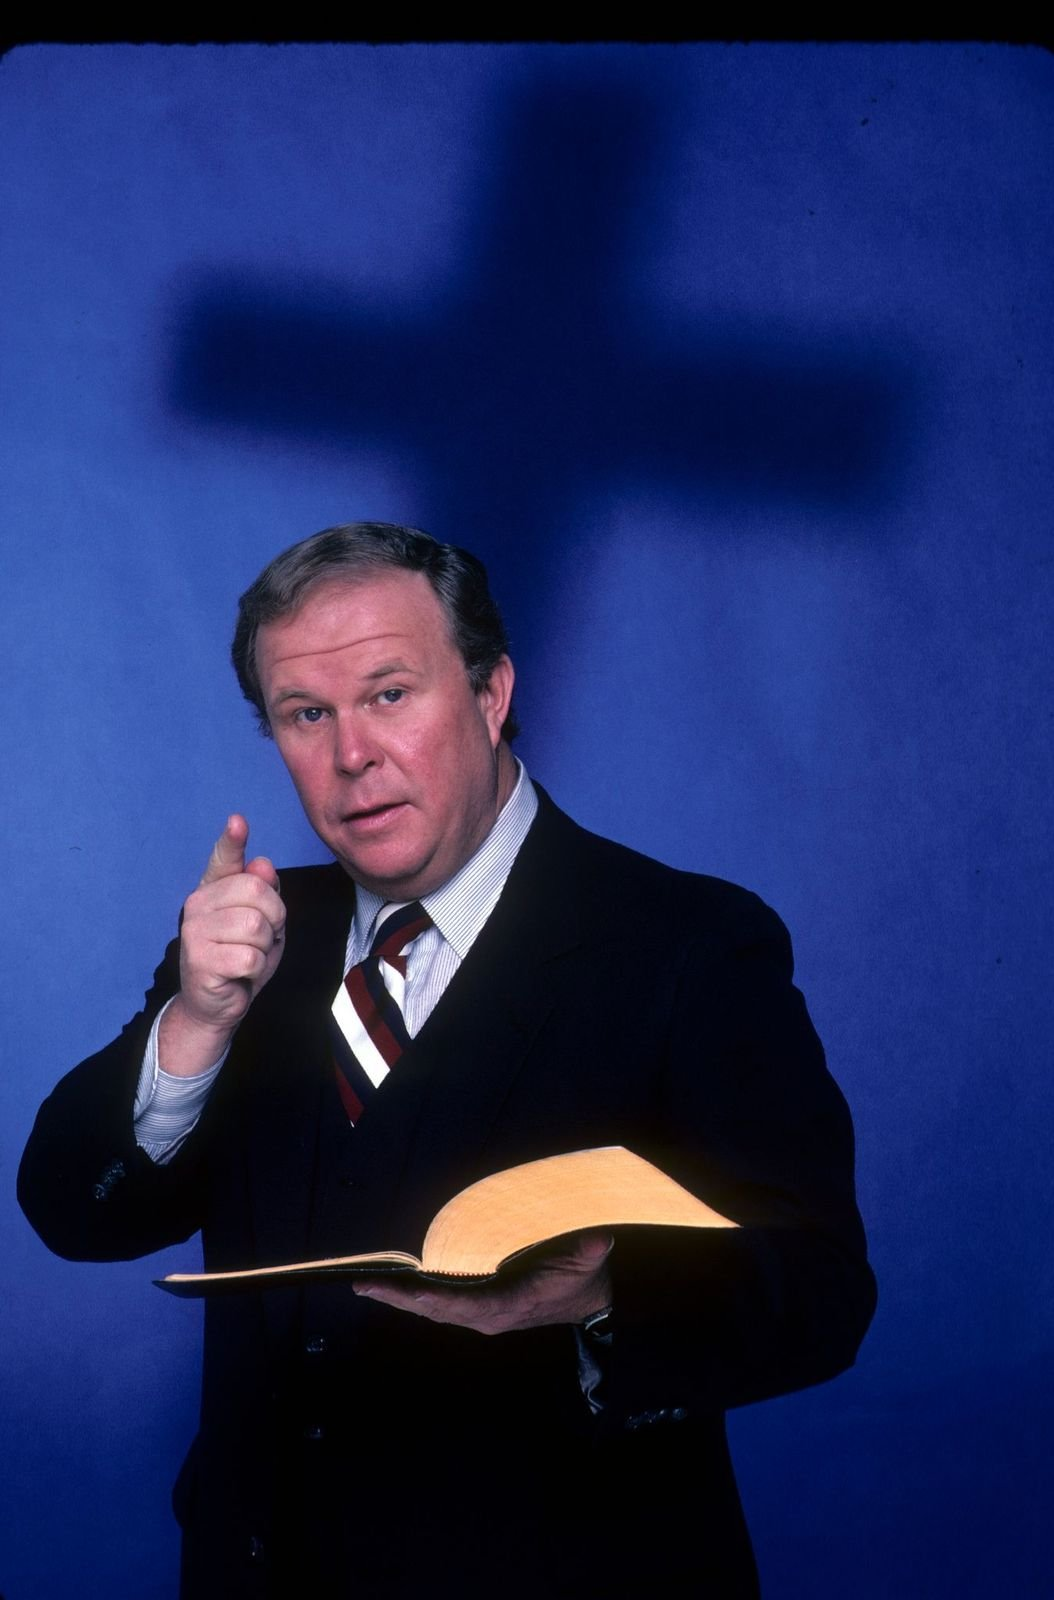 """Ned Beatty on ABC's """"Pray TV - TV Movie"""" set for February 1, 1982, air date